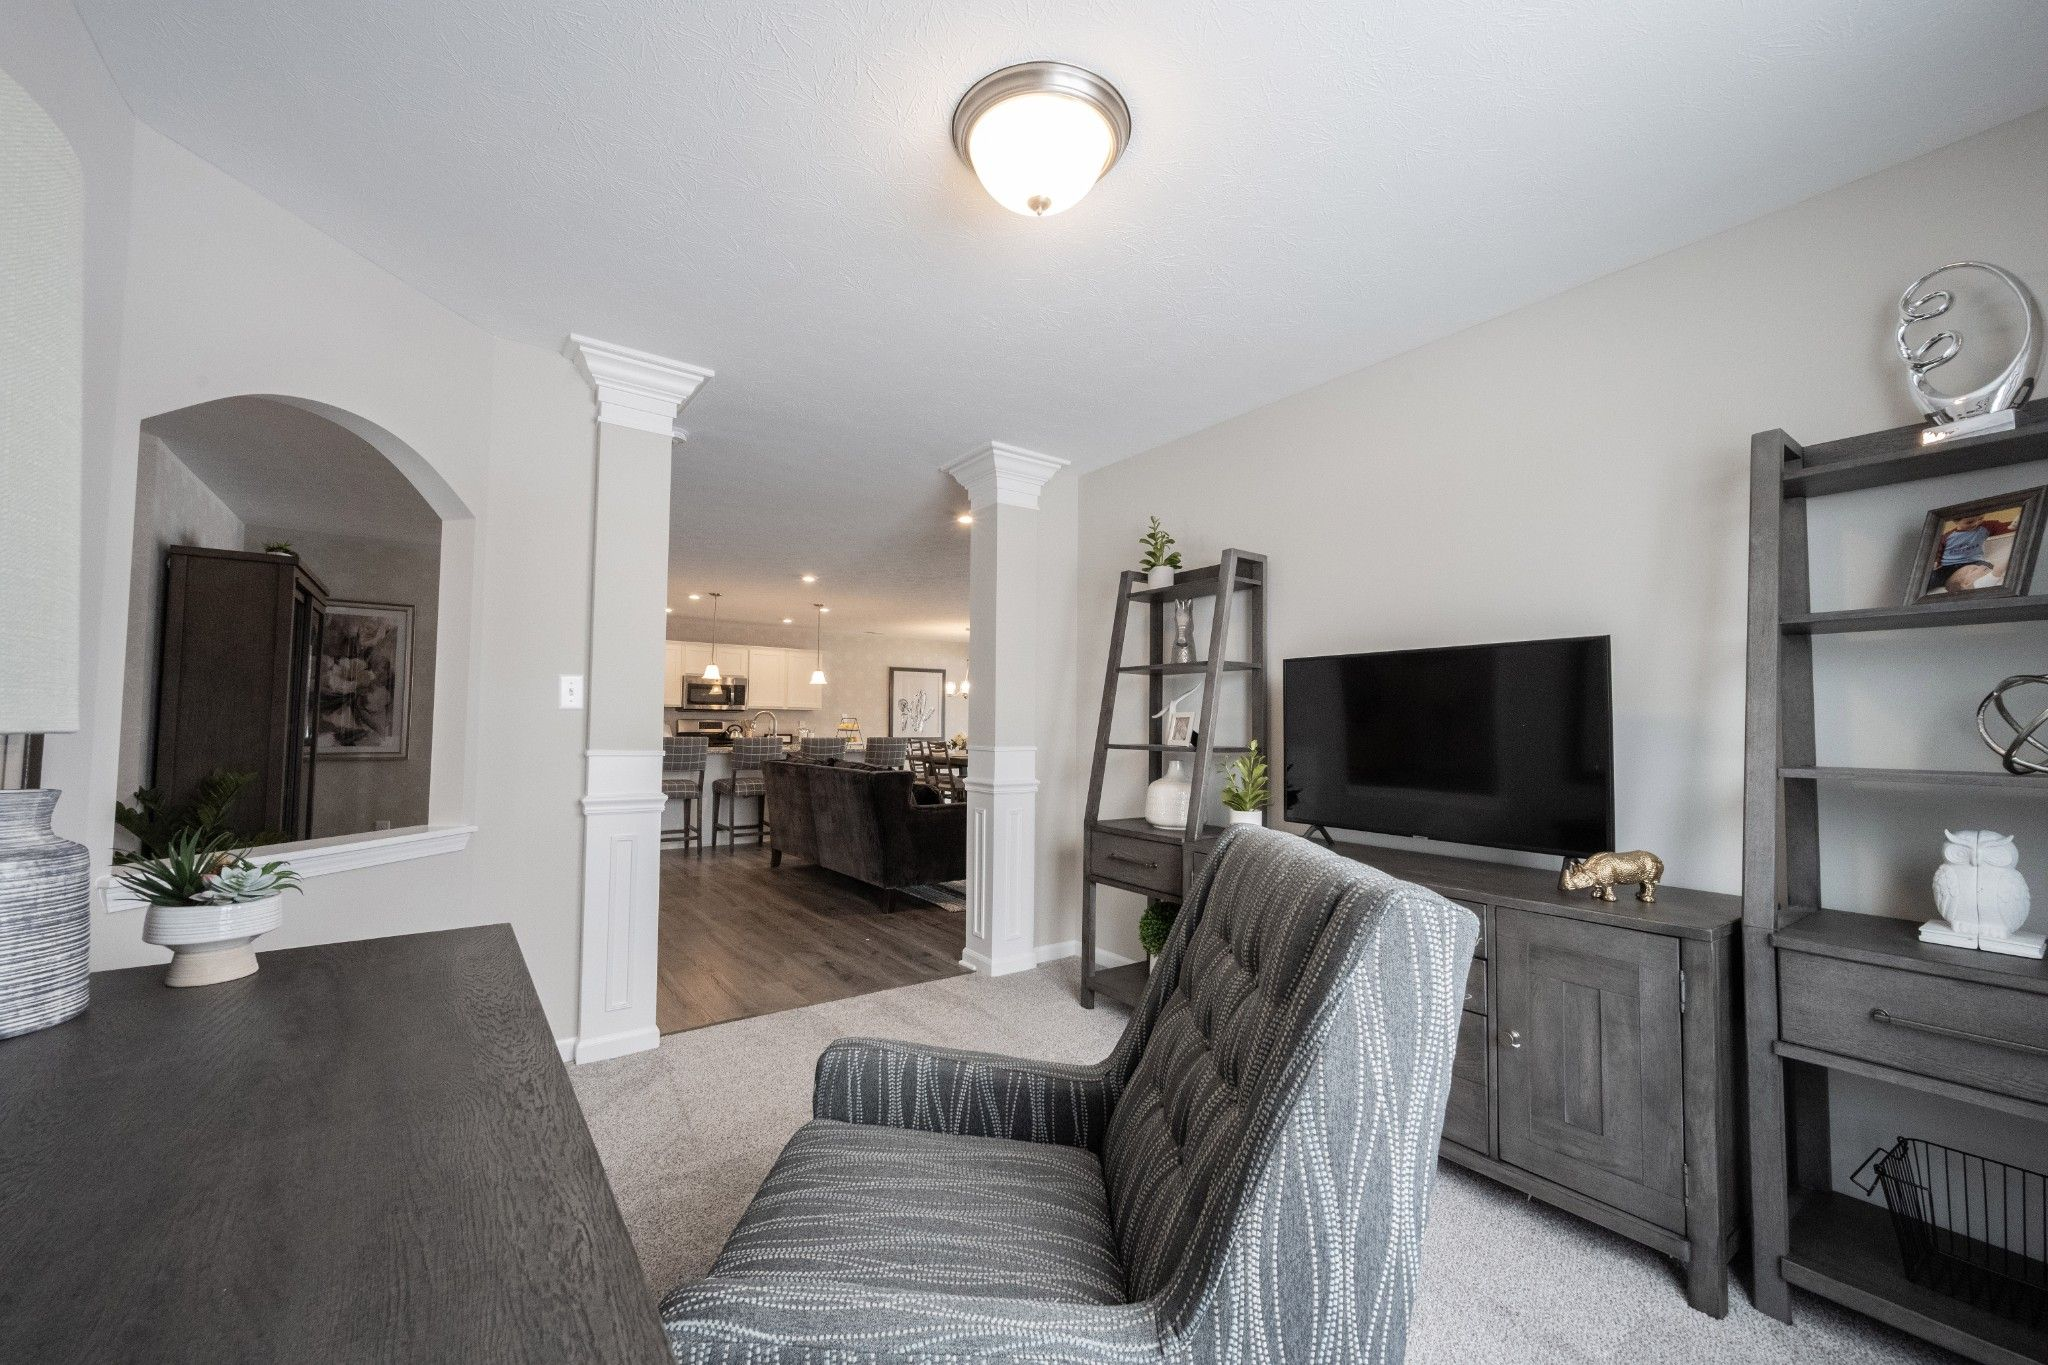 Living Area featured in the Keaton By Olthof Homes in Indianapolis, IN